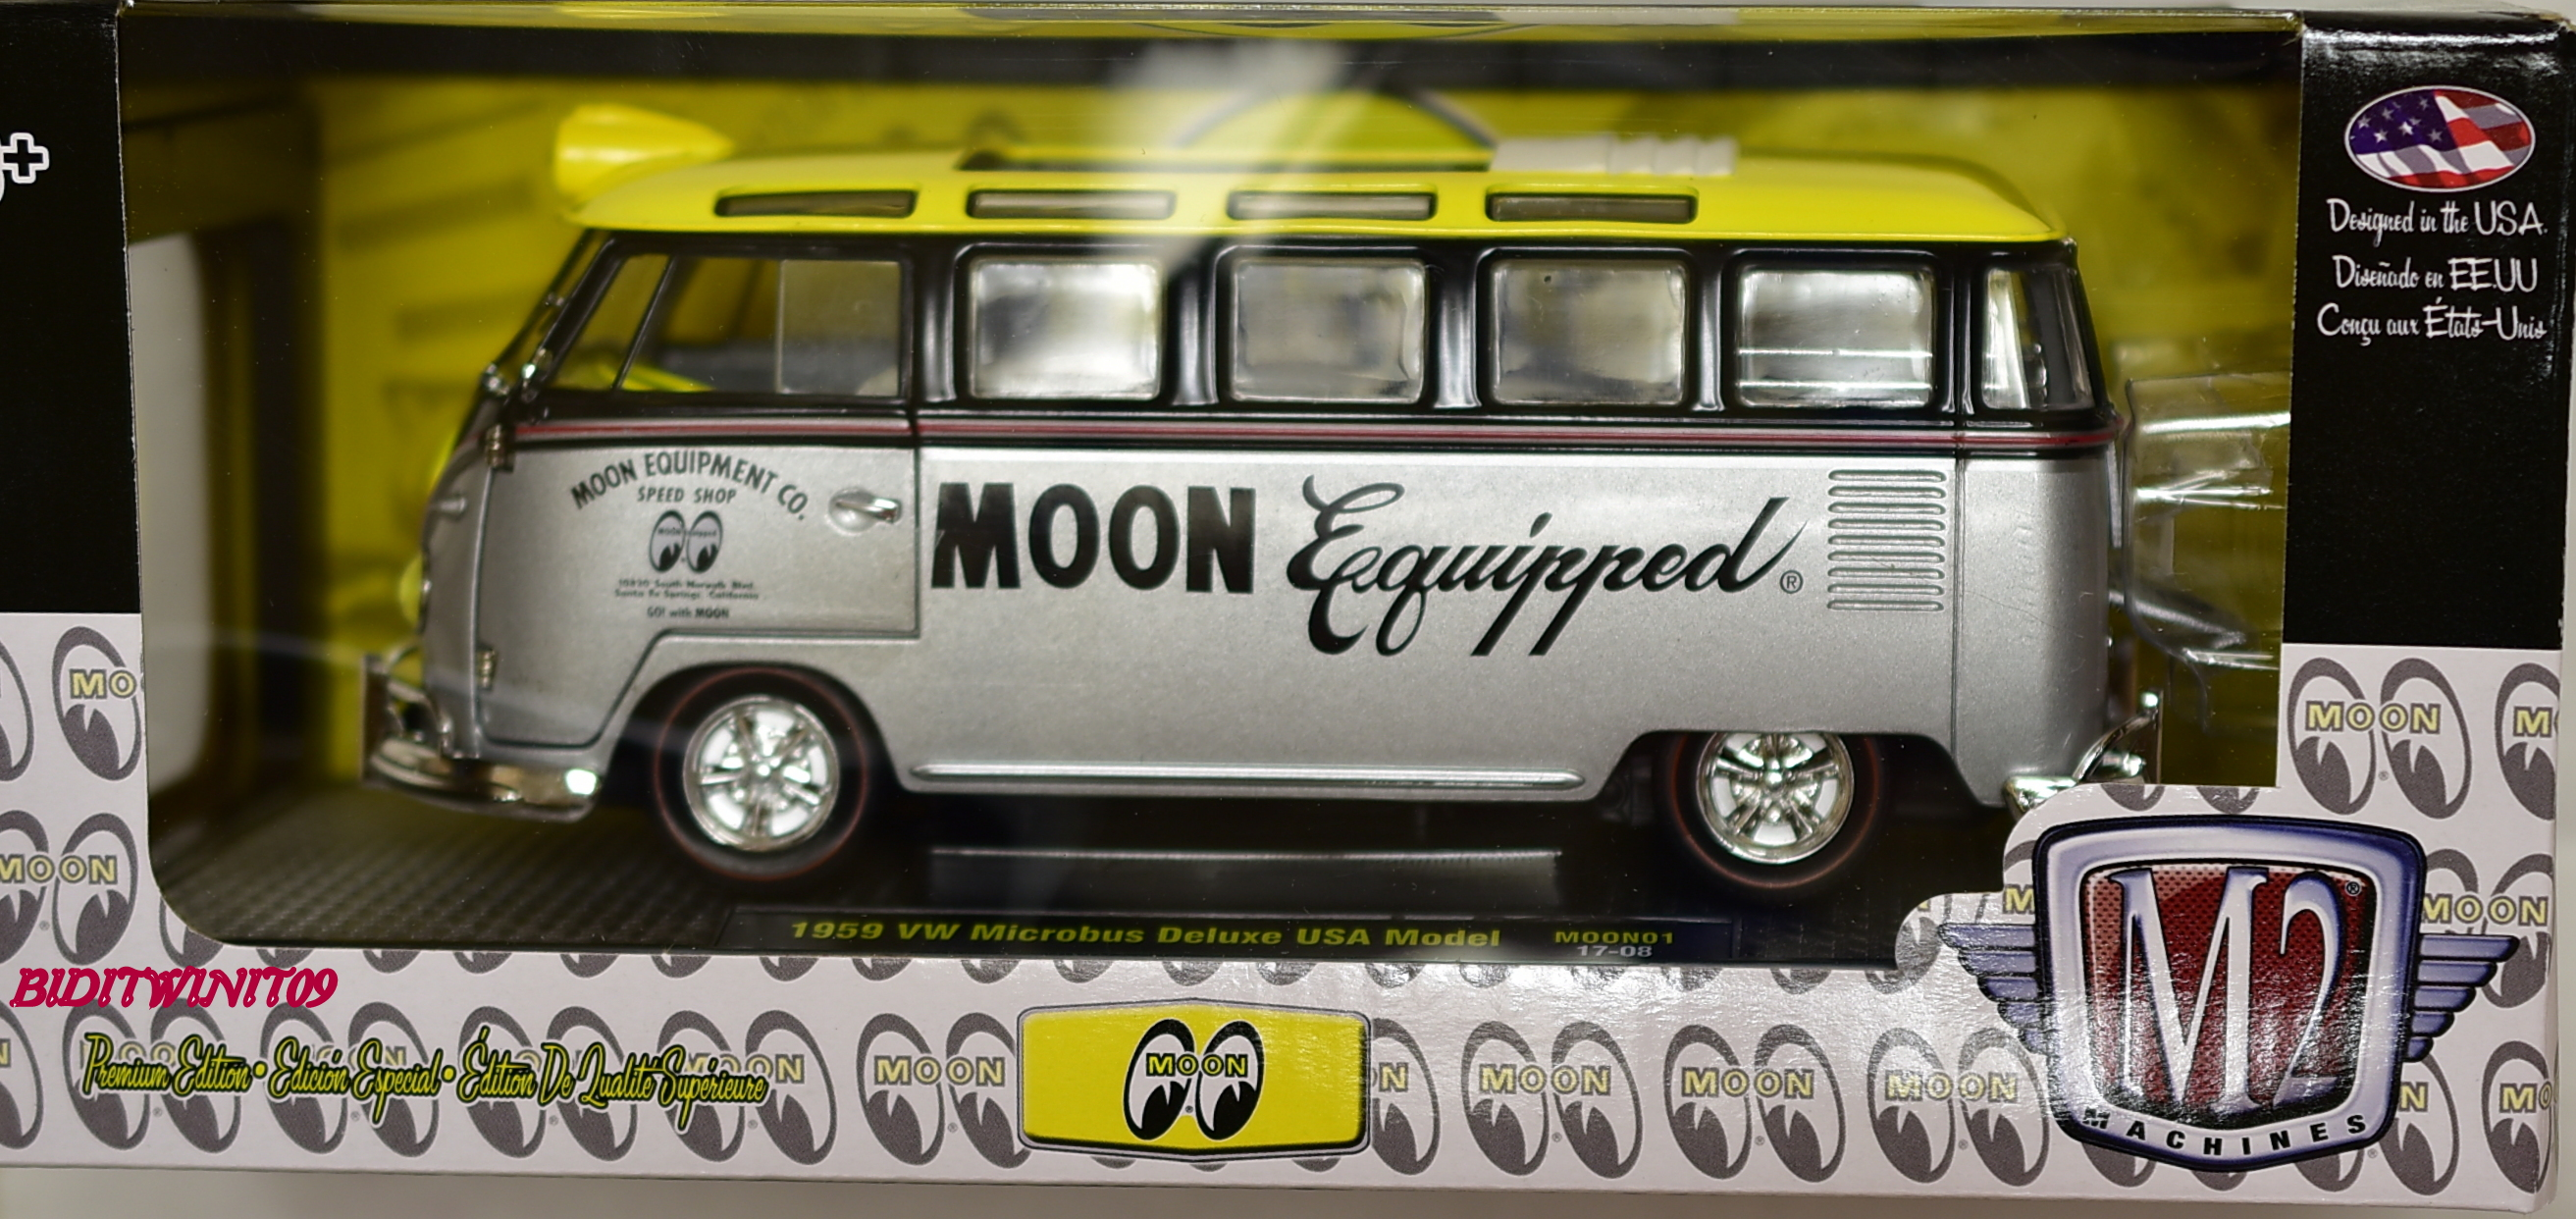 M2 MACHINES SCALE 1:24 1959 VW MICROBUS DELUXE USA MODEL MOON EYES MOON01